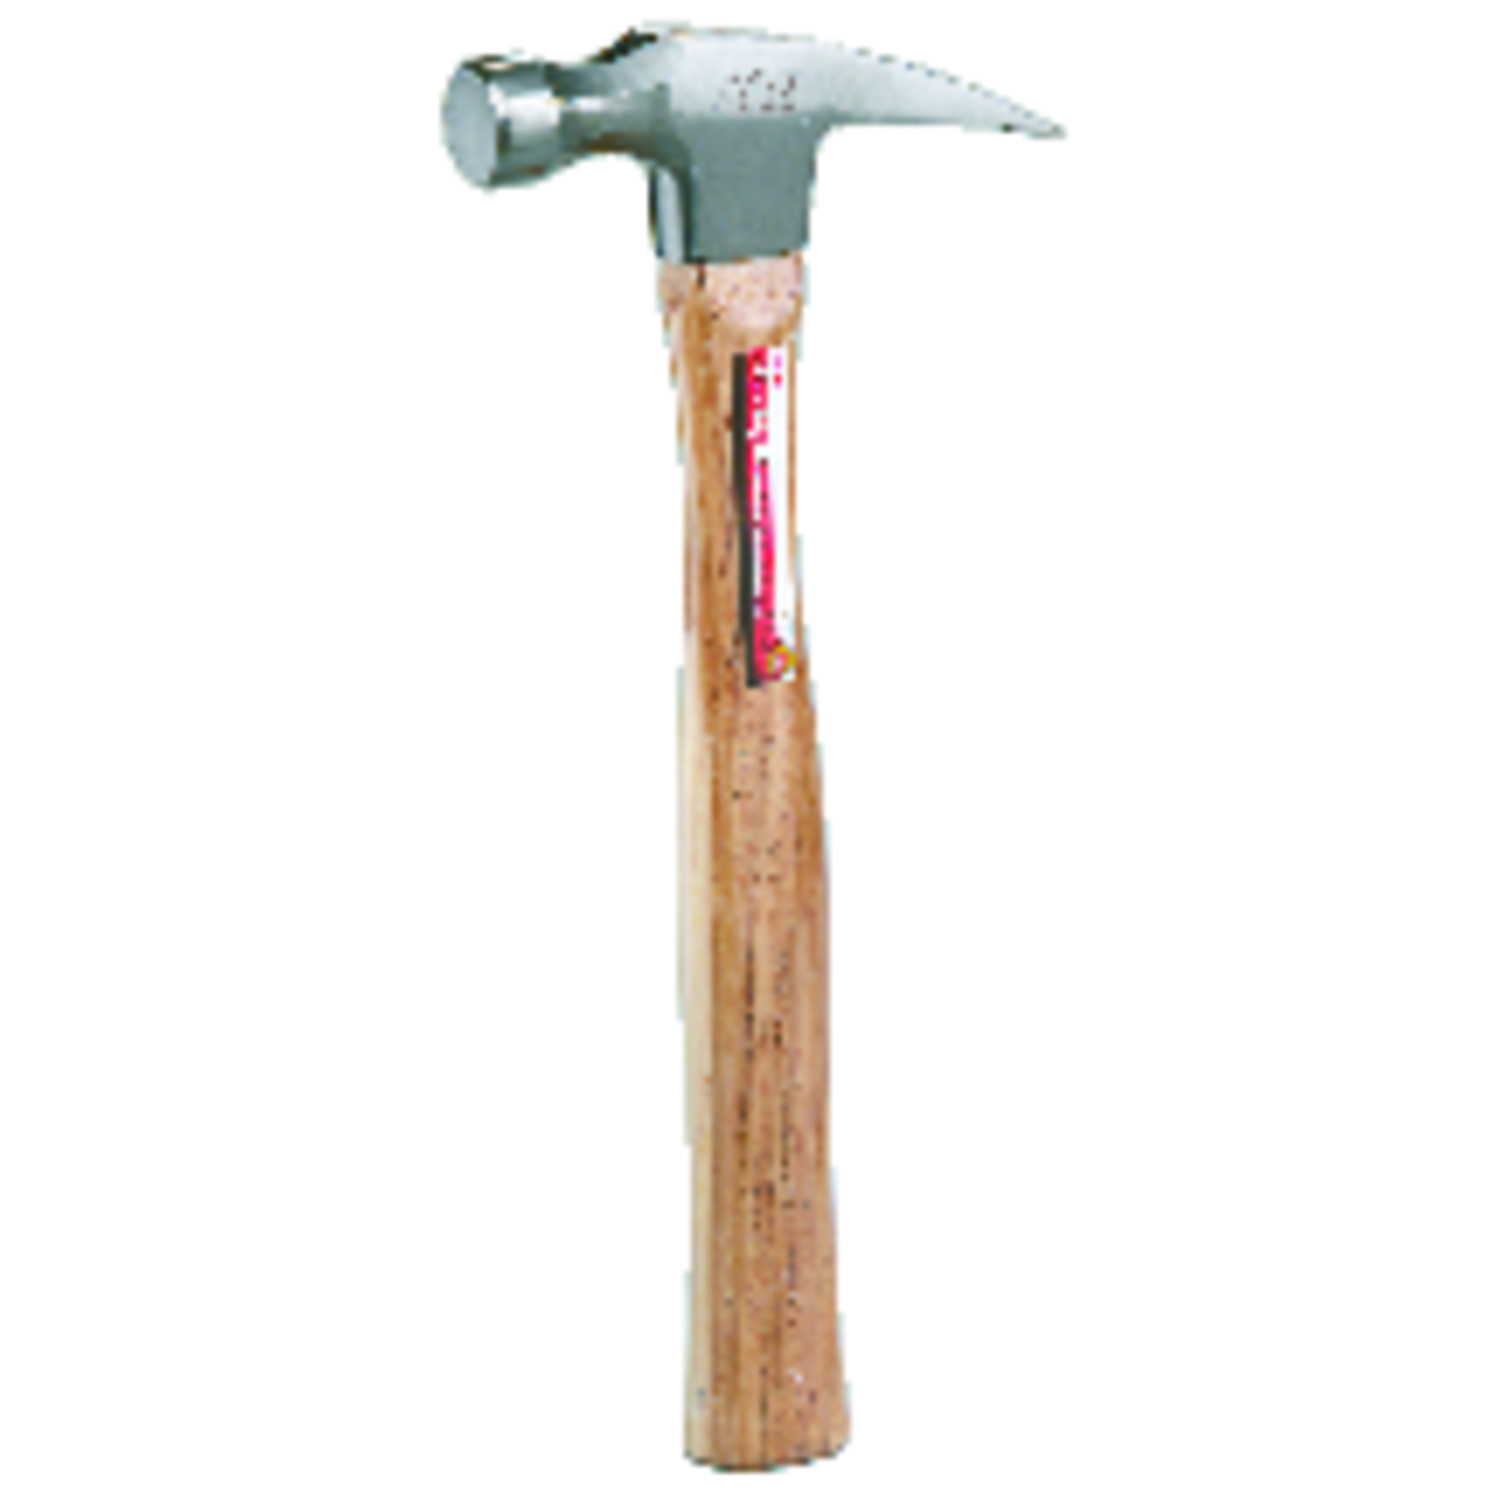 Ace  16 oz. Rip Claw Hammer  Forged Steel  Hickory Handle  12.95 in. L